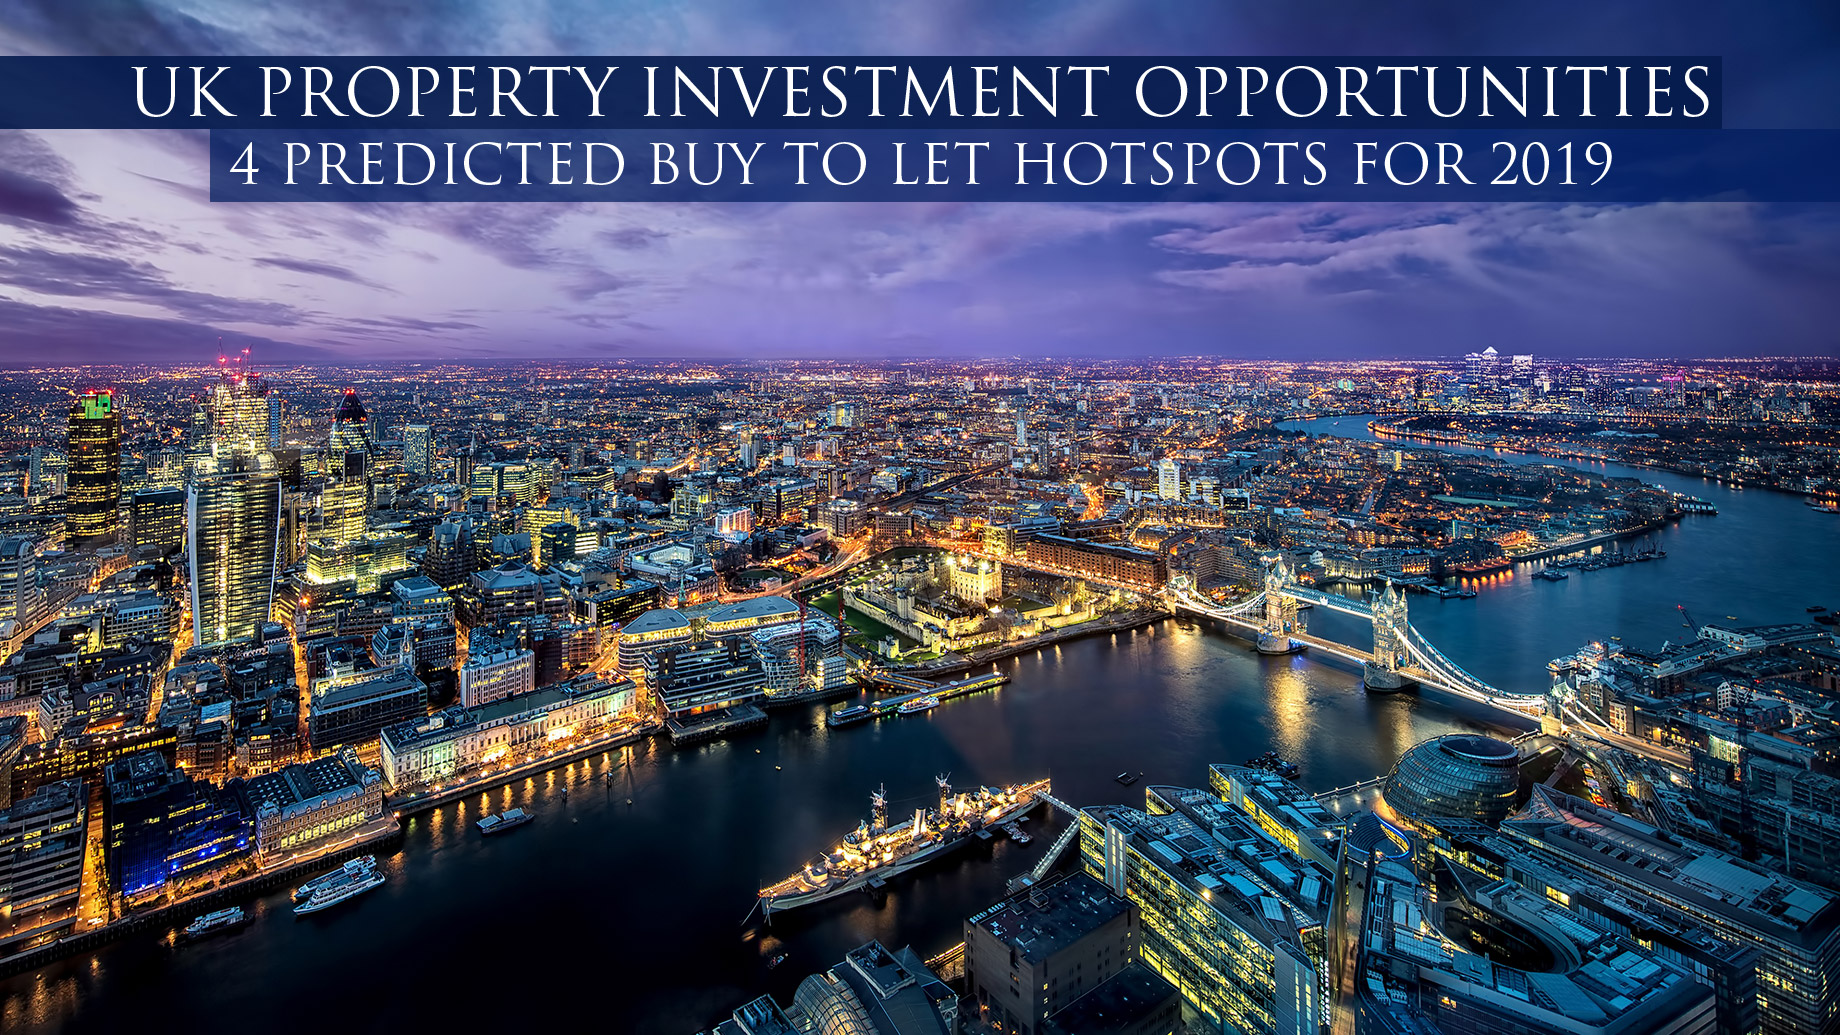 UK Property Investment Opportunities - 4 Predicted Buy To Let Hotspots for 2019